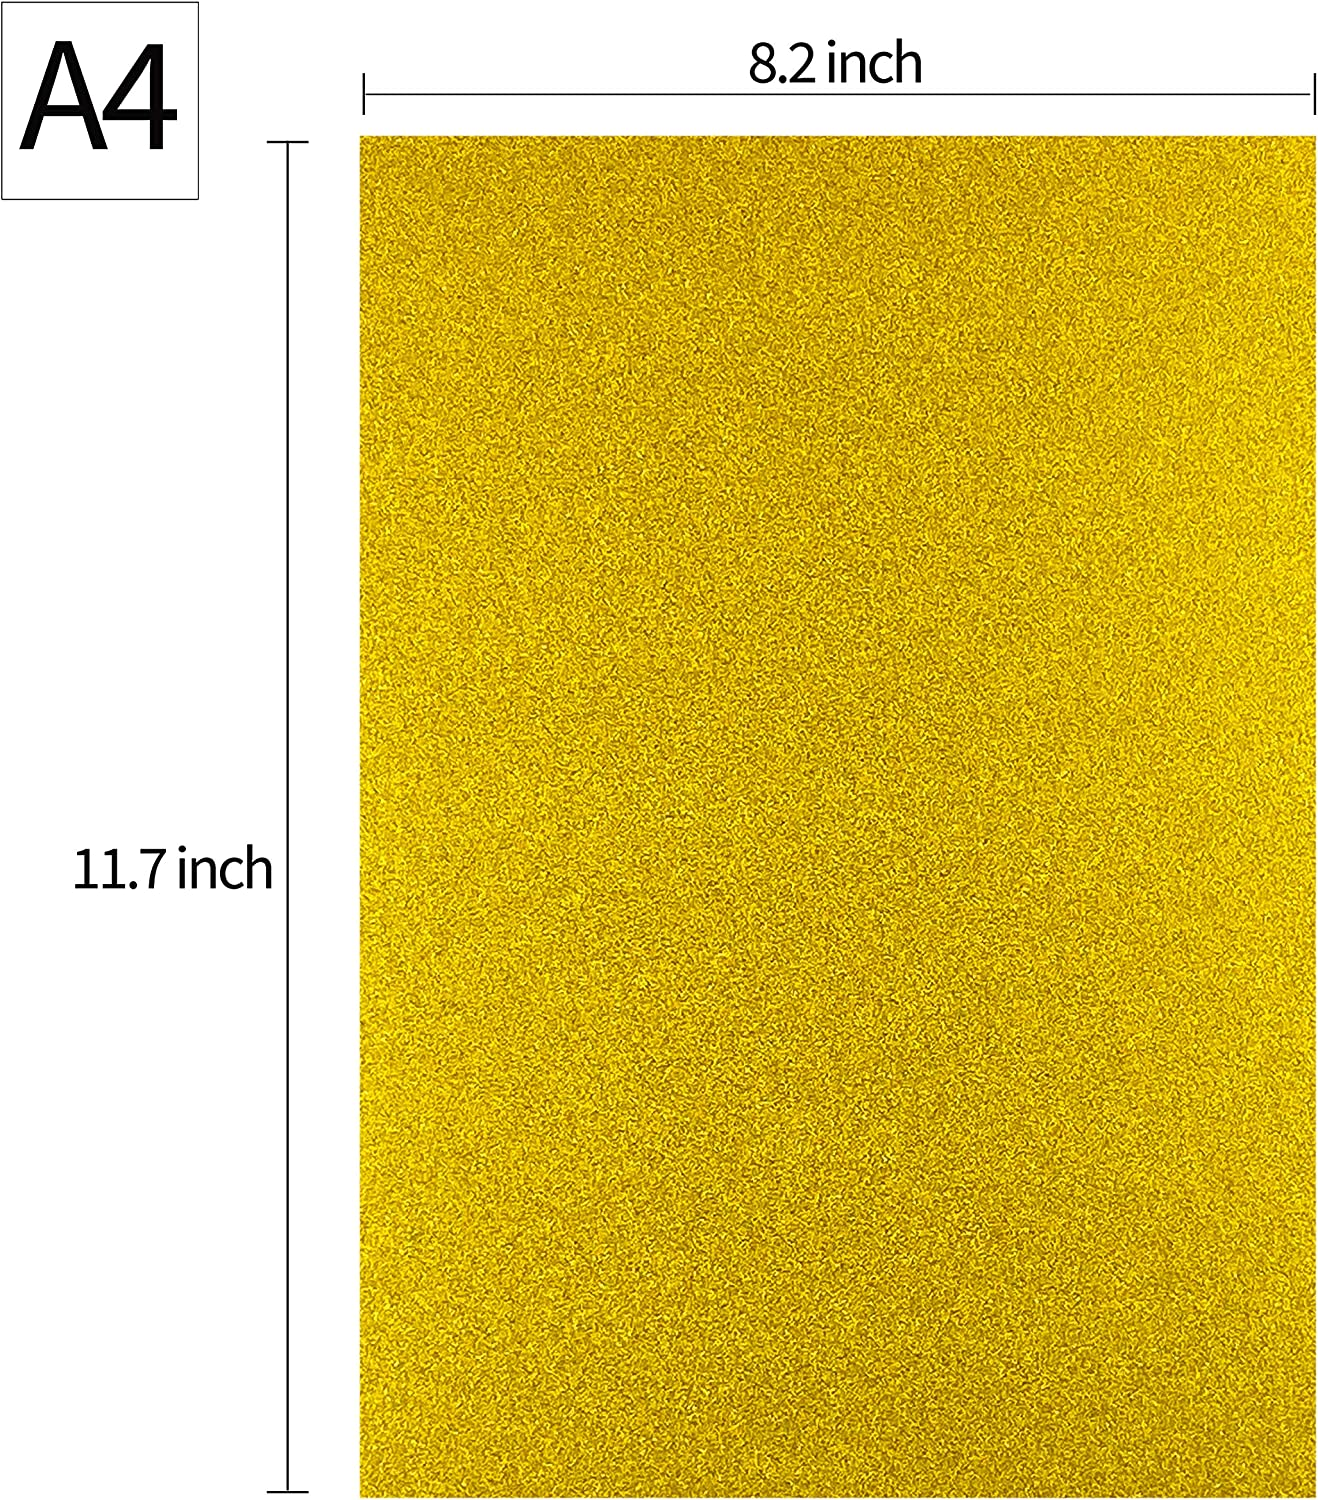 DIY // 300GSM 8 Assorted Color Gift Wrapping 110lb 50 Sheets A4 Colored Craft Card Stock for Craft Project Birthday Party Wedding Decorations Scrapbooking Heavyweight Glitter Cardstock Paper